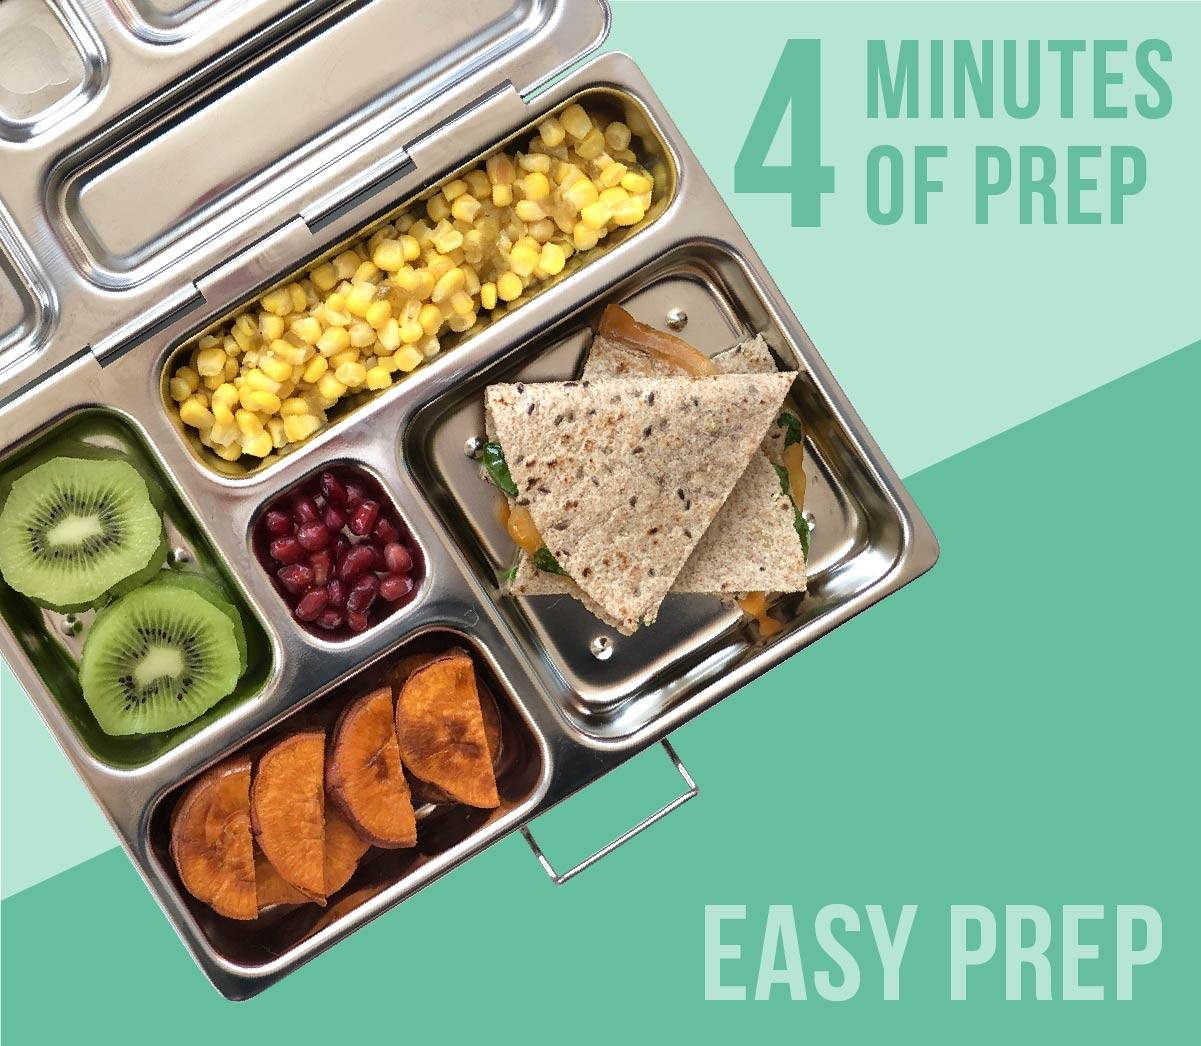 Kids lunch box filled with a spinach cheese quesadilla, roasted sweet potato, kiwi slices, corn, and pomegranate seeds.